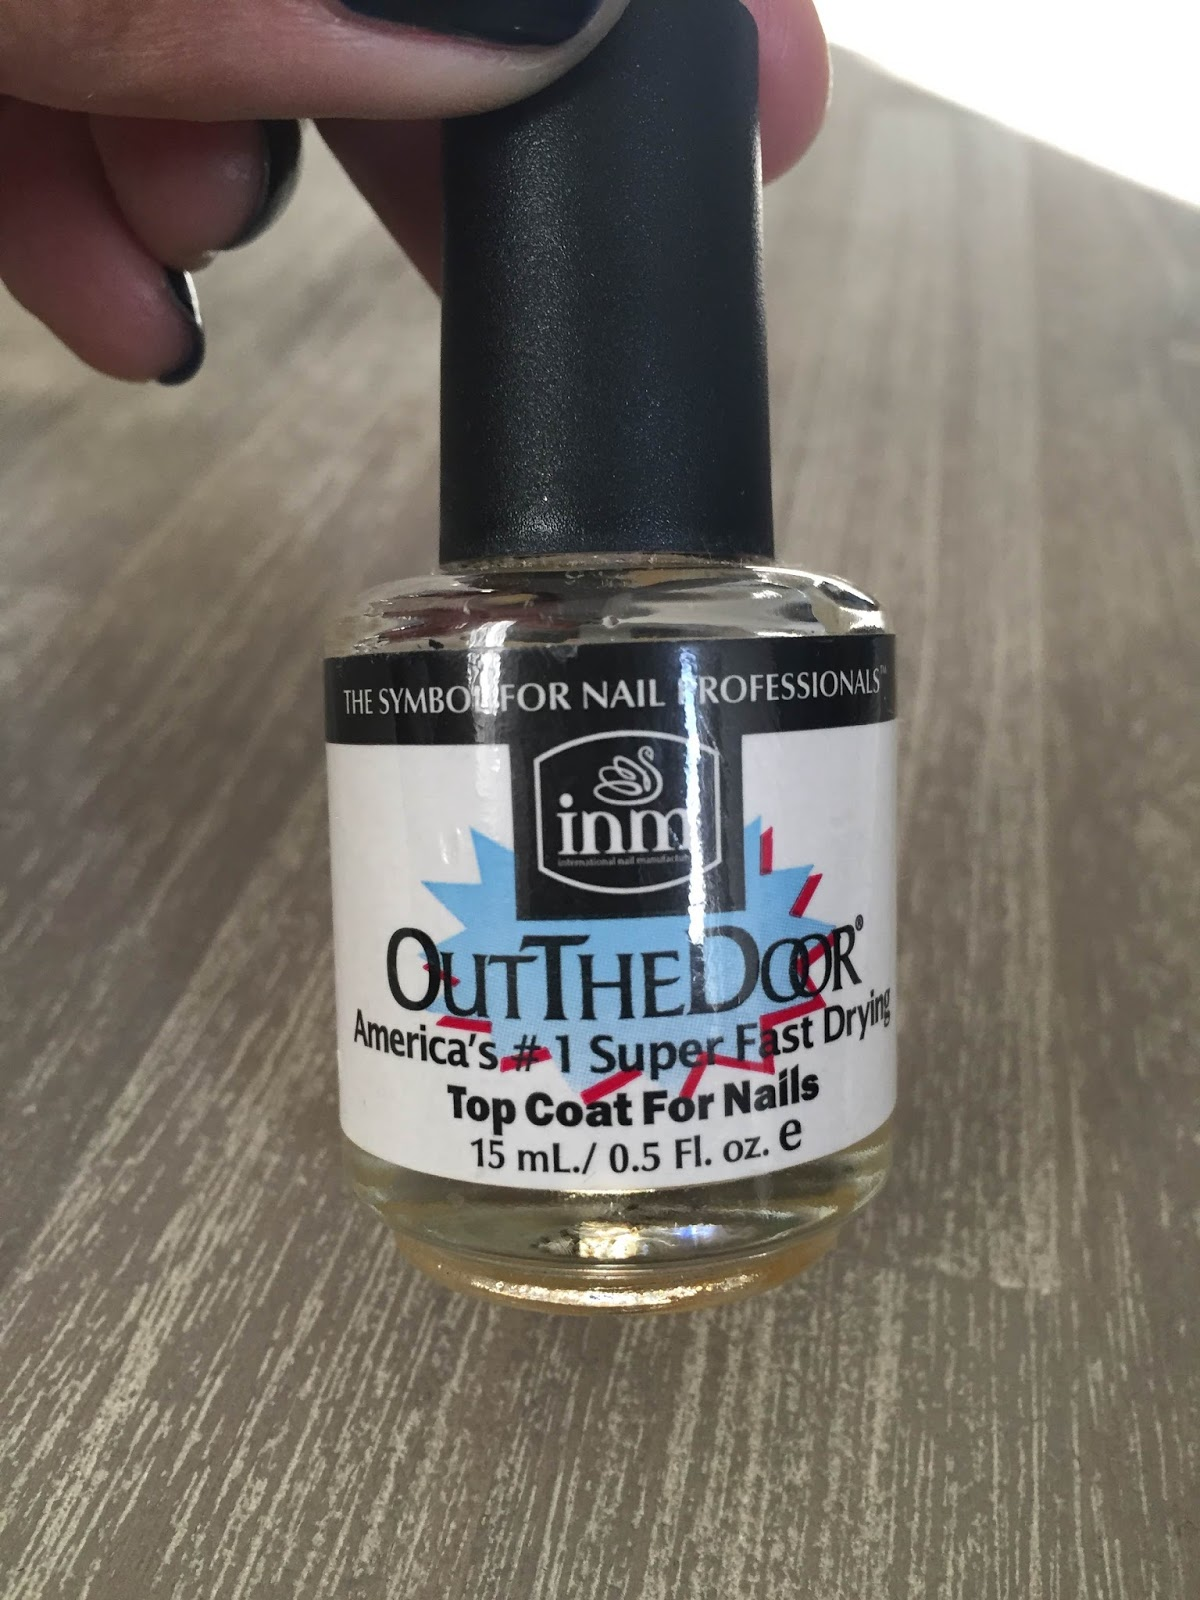 forever following the light otd is another popular top coat for whatever reason the bottle i own is a clear yellowish liquid rather than completely clear not sure if that impacts its